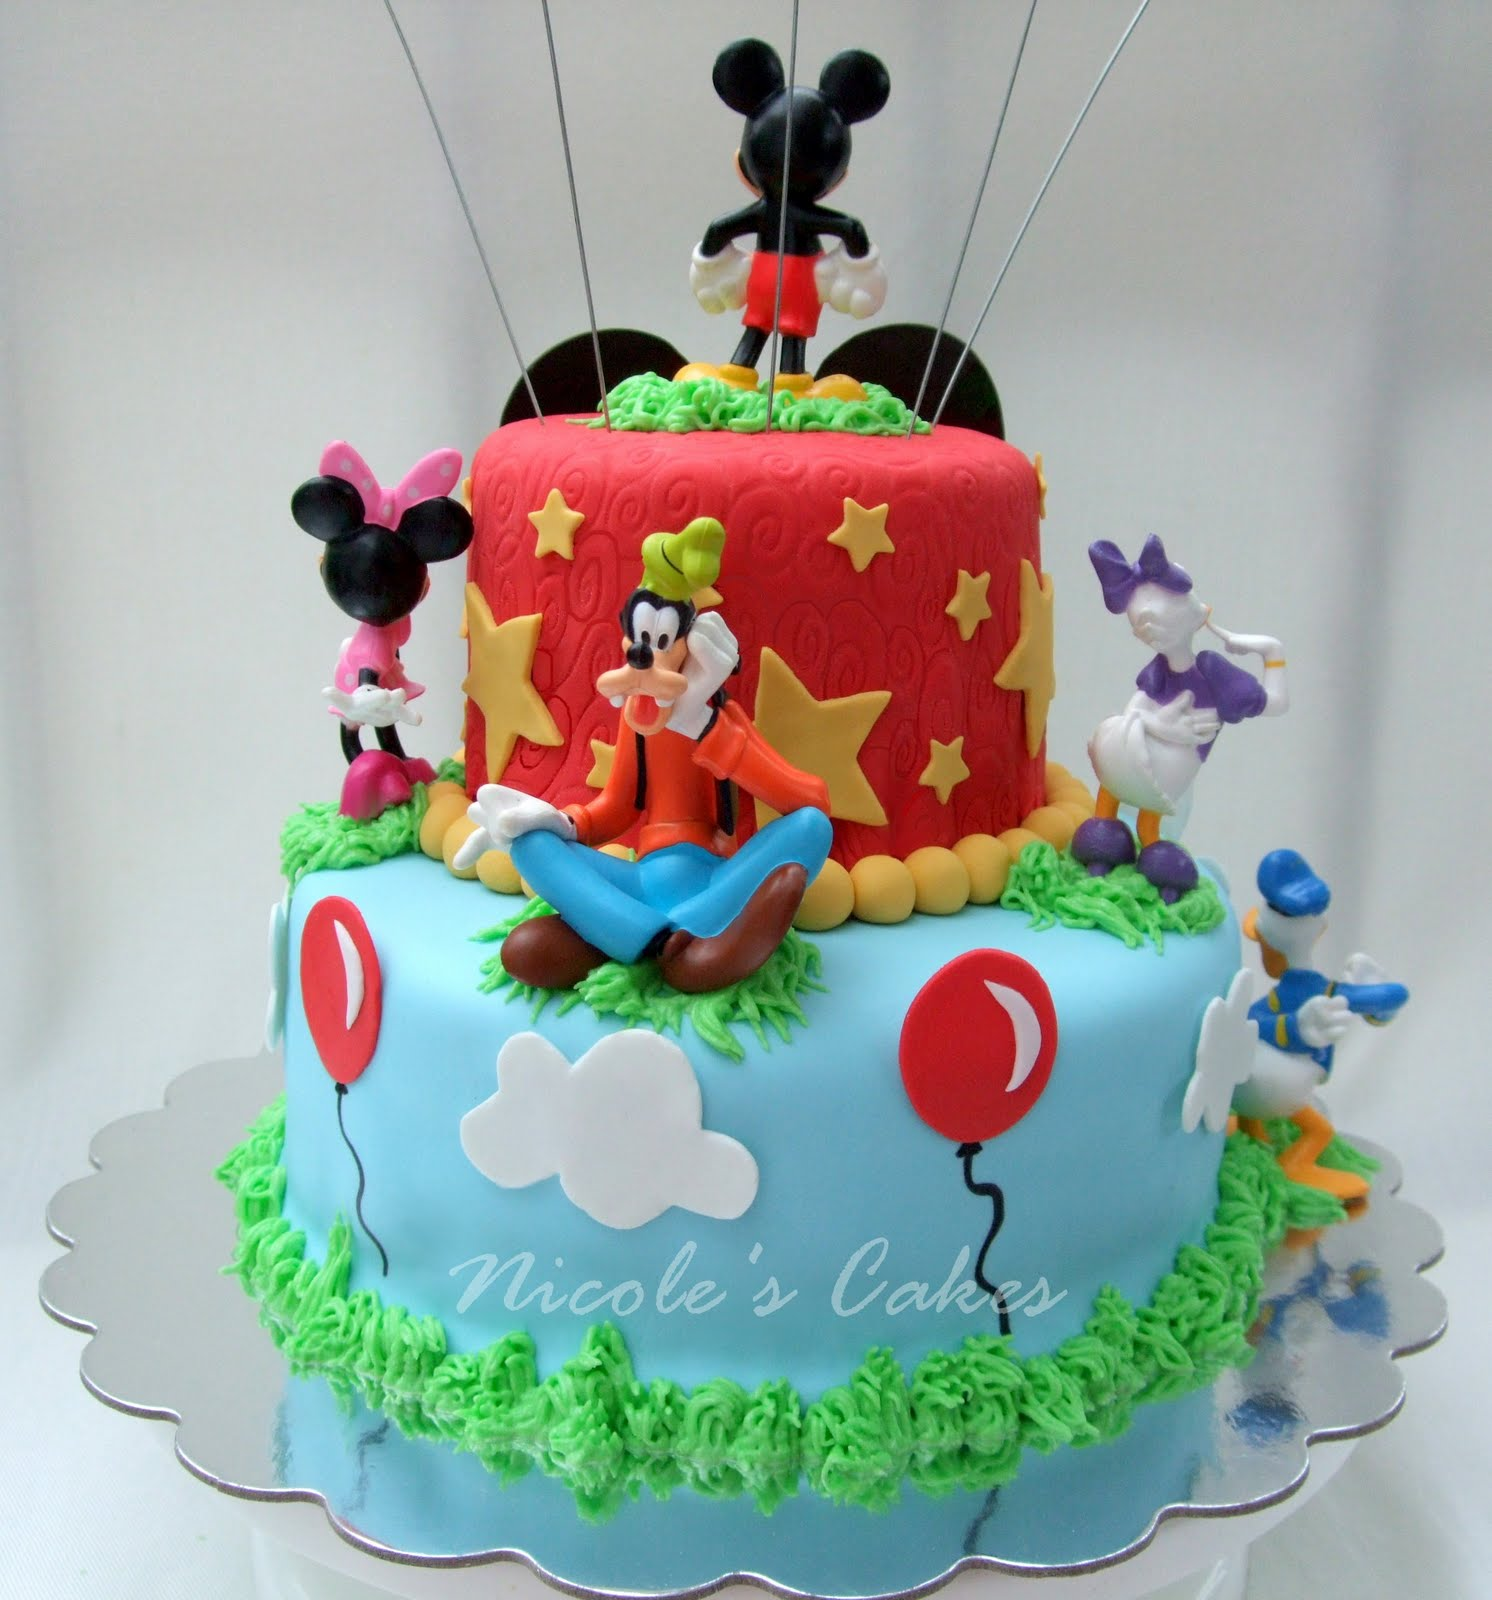 Cake Images Of Mickey Mouse : Confections, Cakes & Creations!: Mickey Mouse Clubhouse ...